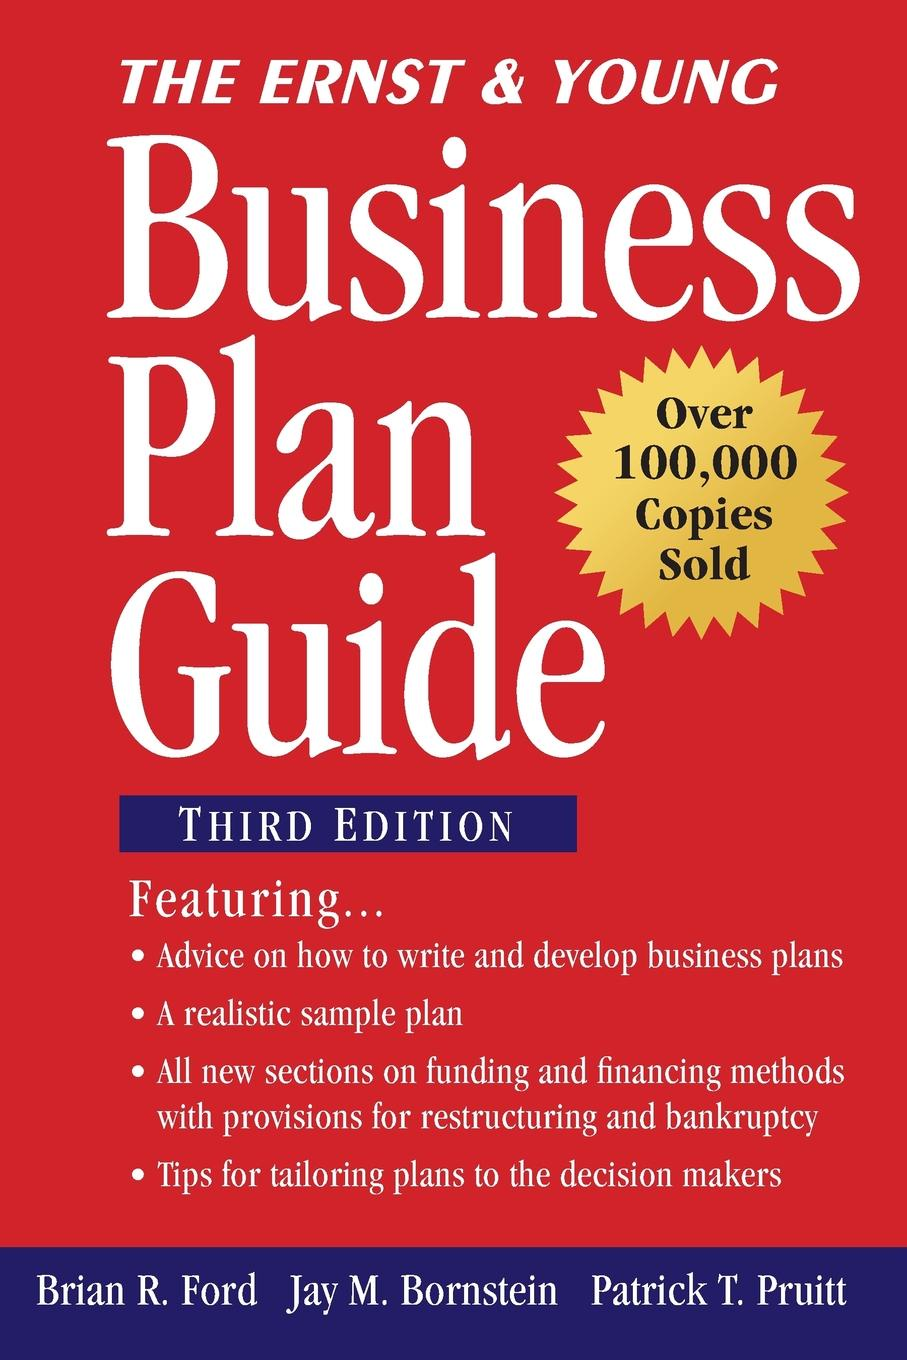 Brian R. Ford, Jay M. Bornstein, Patrick T. Pruitt The Ernst & Young Business Plan Guide horan the one page business plan uk